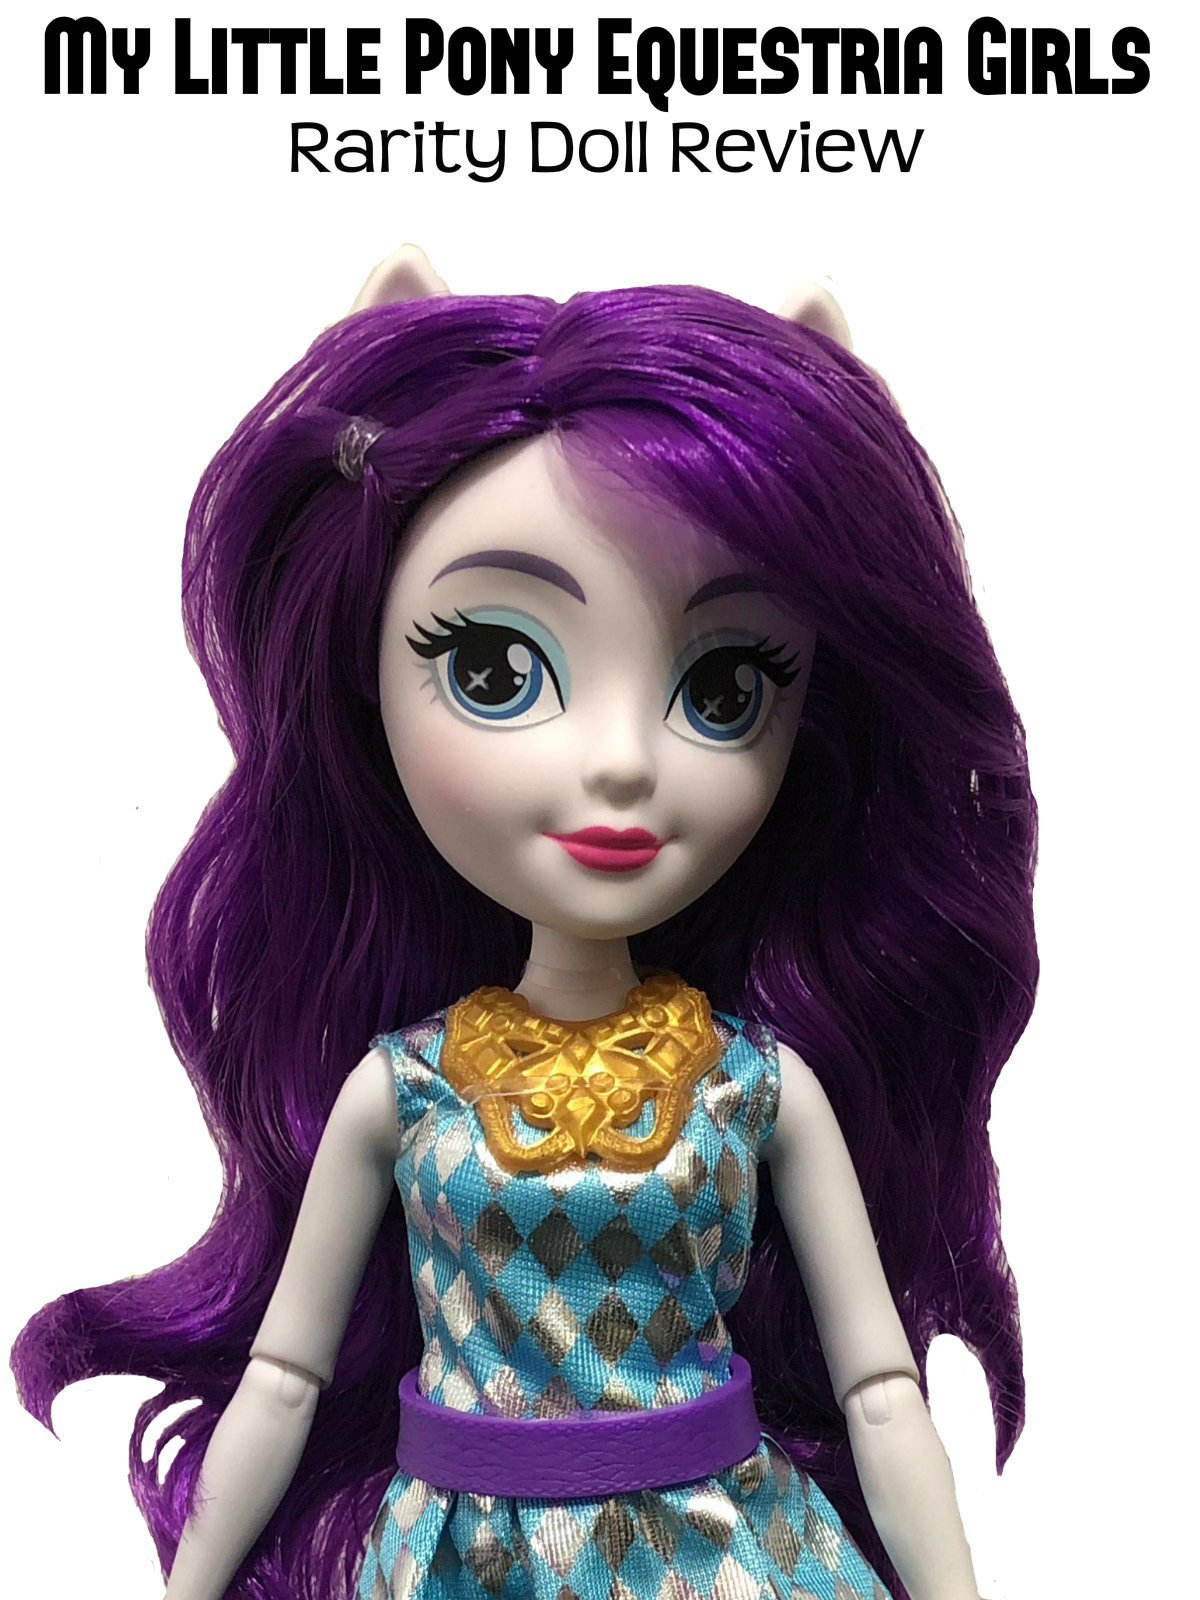 Review: My Little Pony Equestria Girls Rarity Doll Review on Amazon Prime Instant Video UK